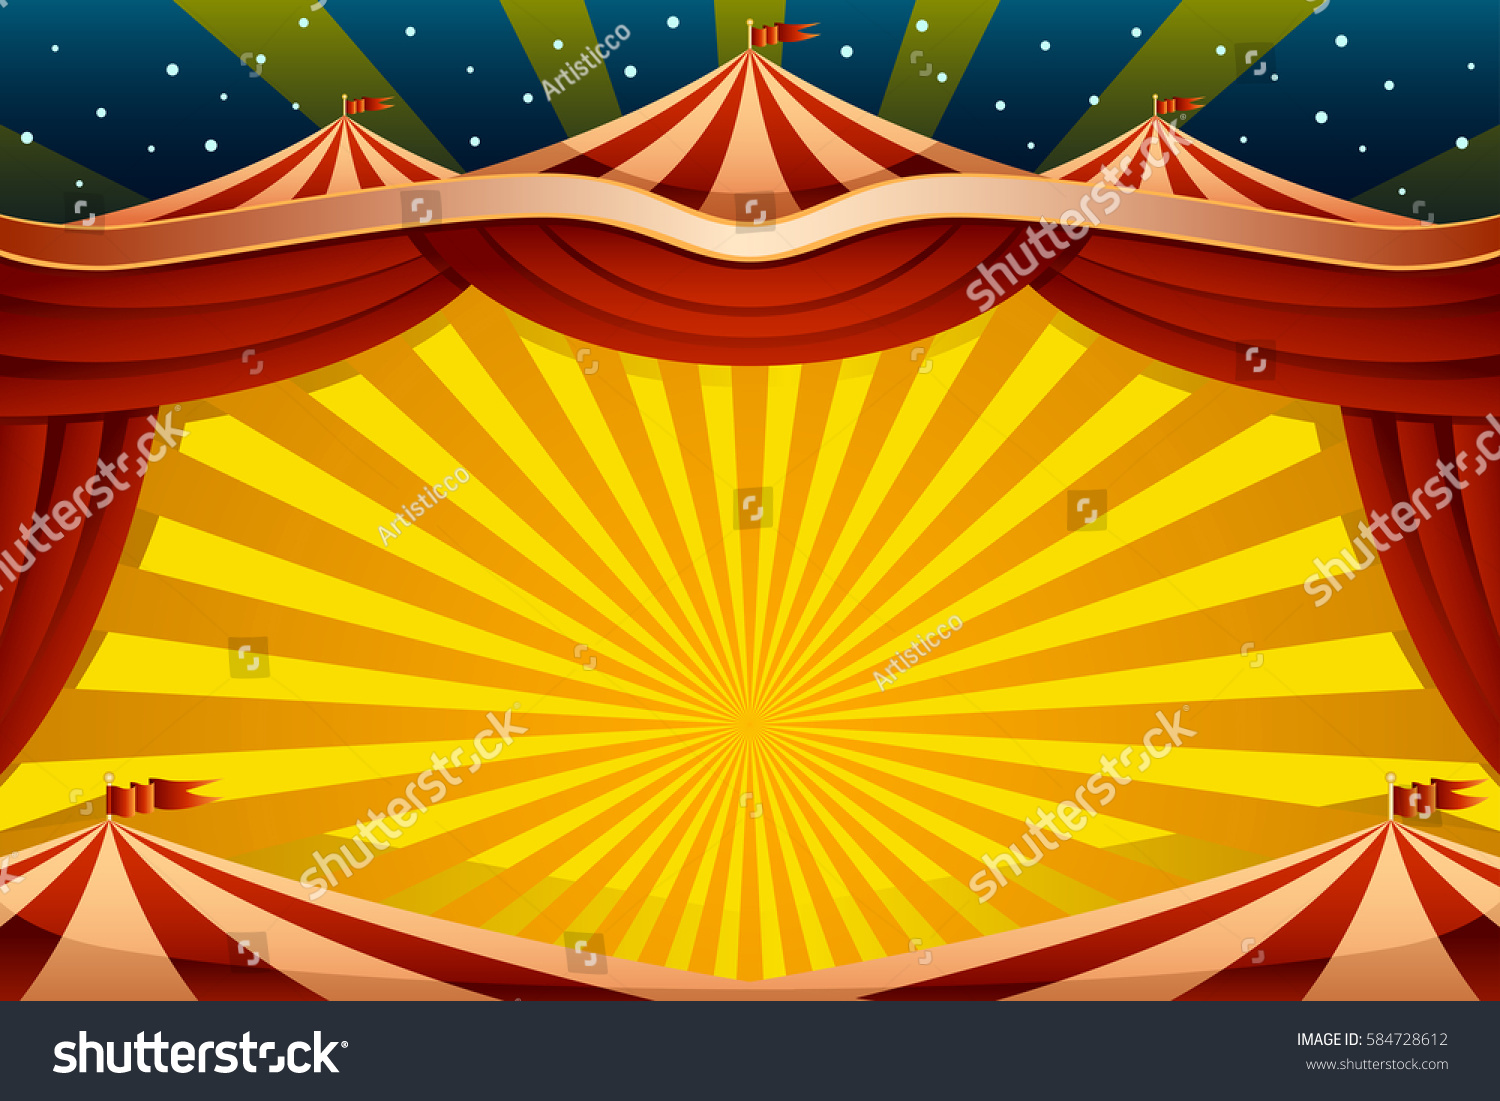 Vector Illustration Circus Tent Background Stock Vector ...